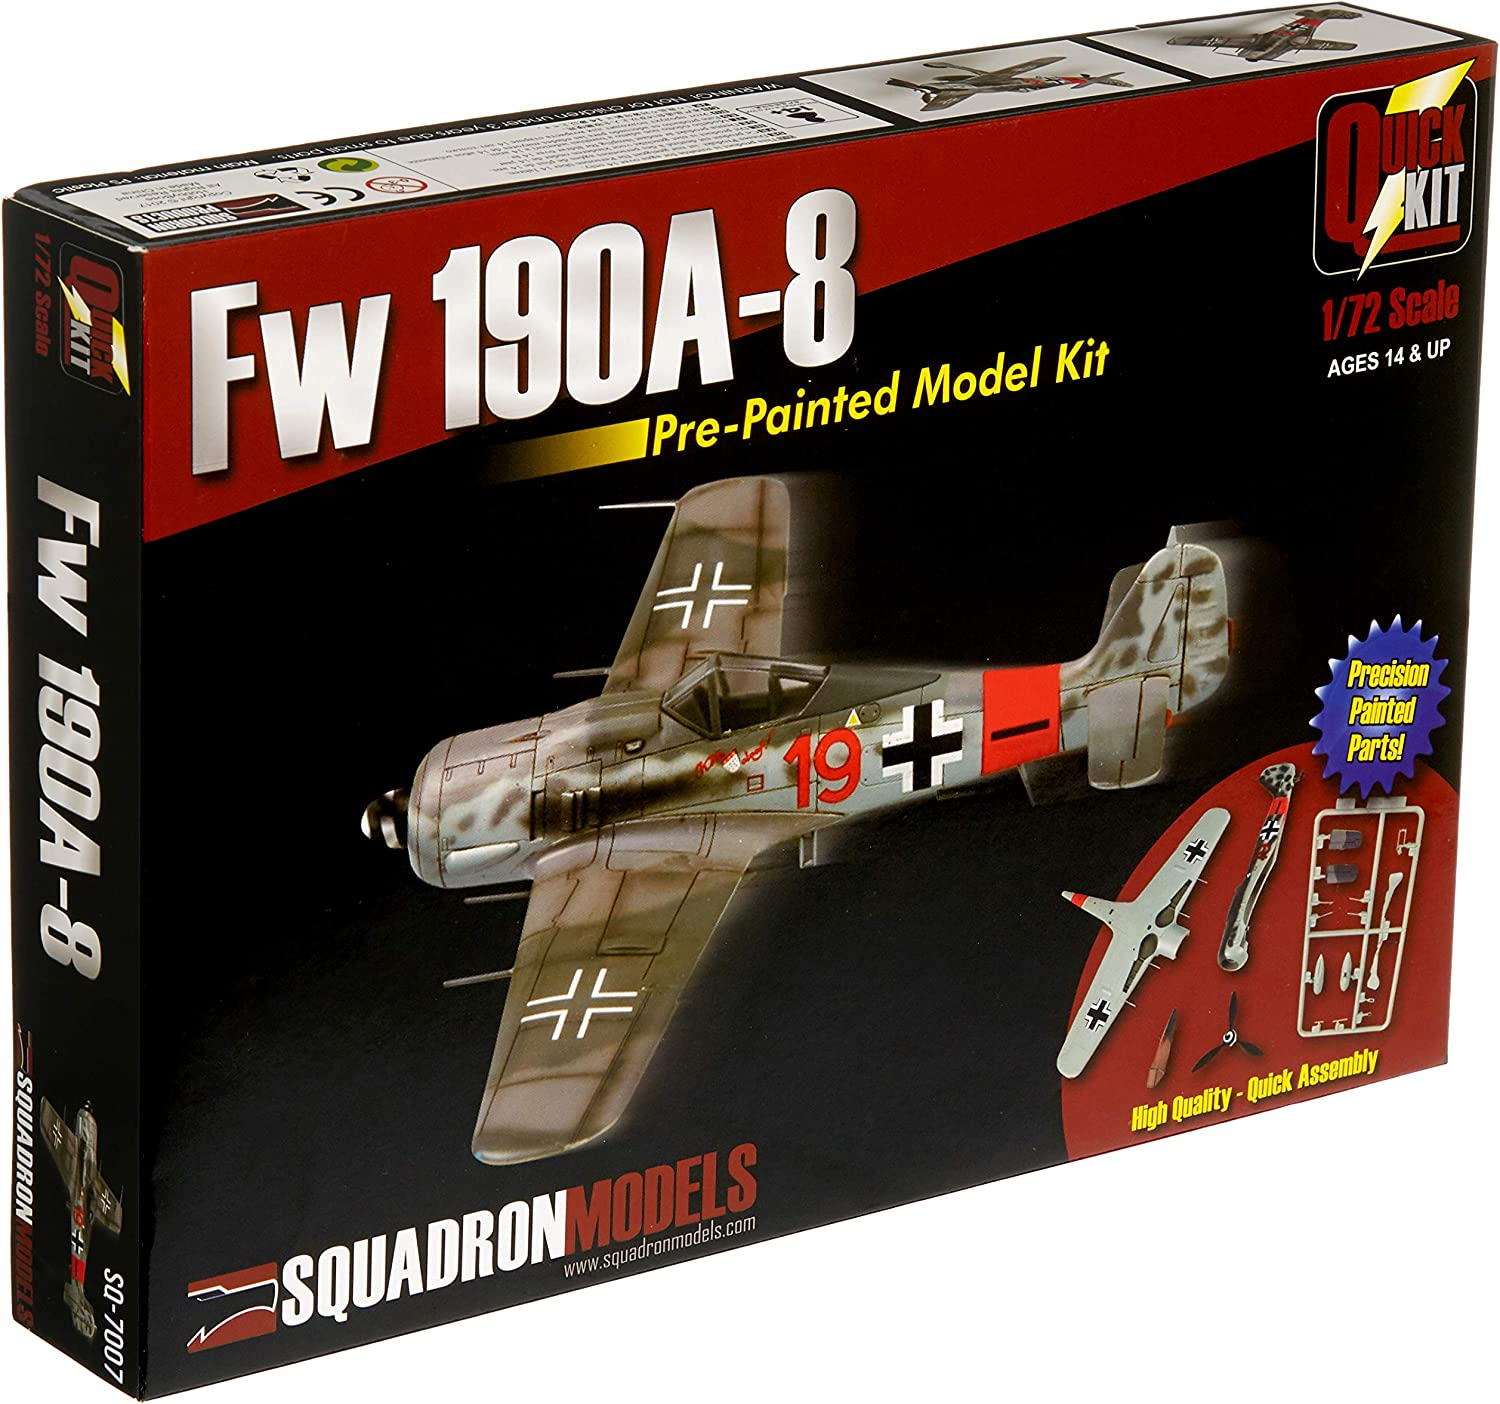 Squadron Products 1/72 FW 190A-8 Pre-Painted Quick Kit